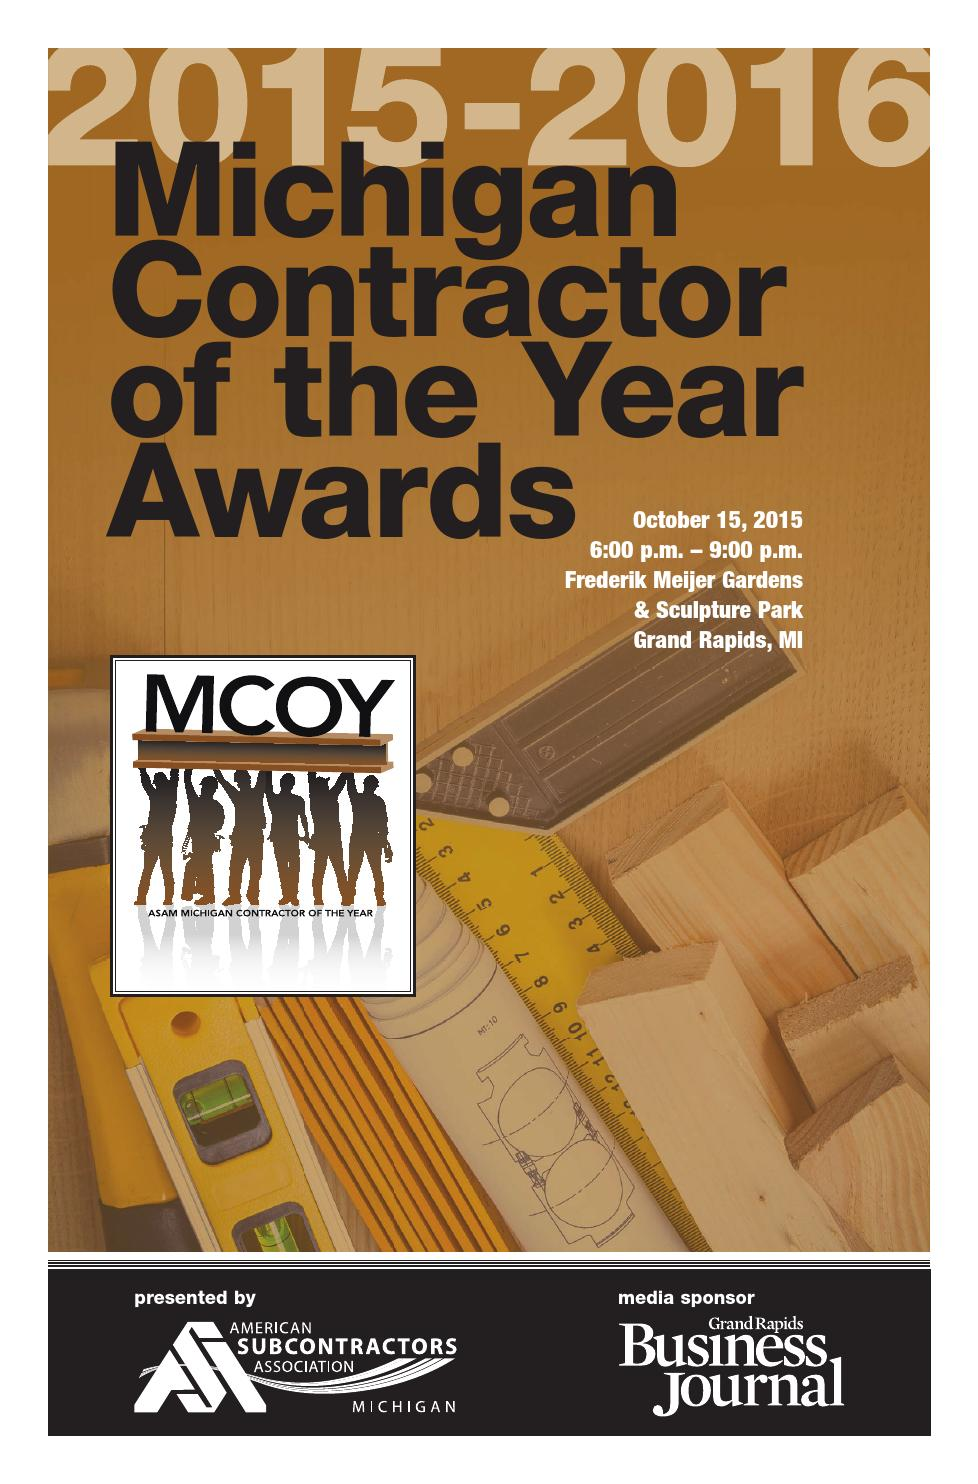 Mcoy 2015 2016 michigan contractor of the year awards by grand mcoy 2015 2016 michigan contractor of the year awards by grand rapids business journal issuu xflitez Gallery